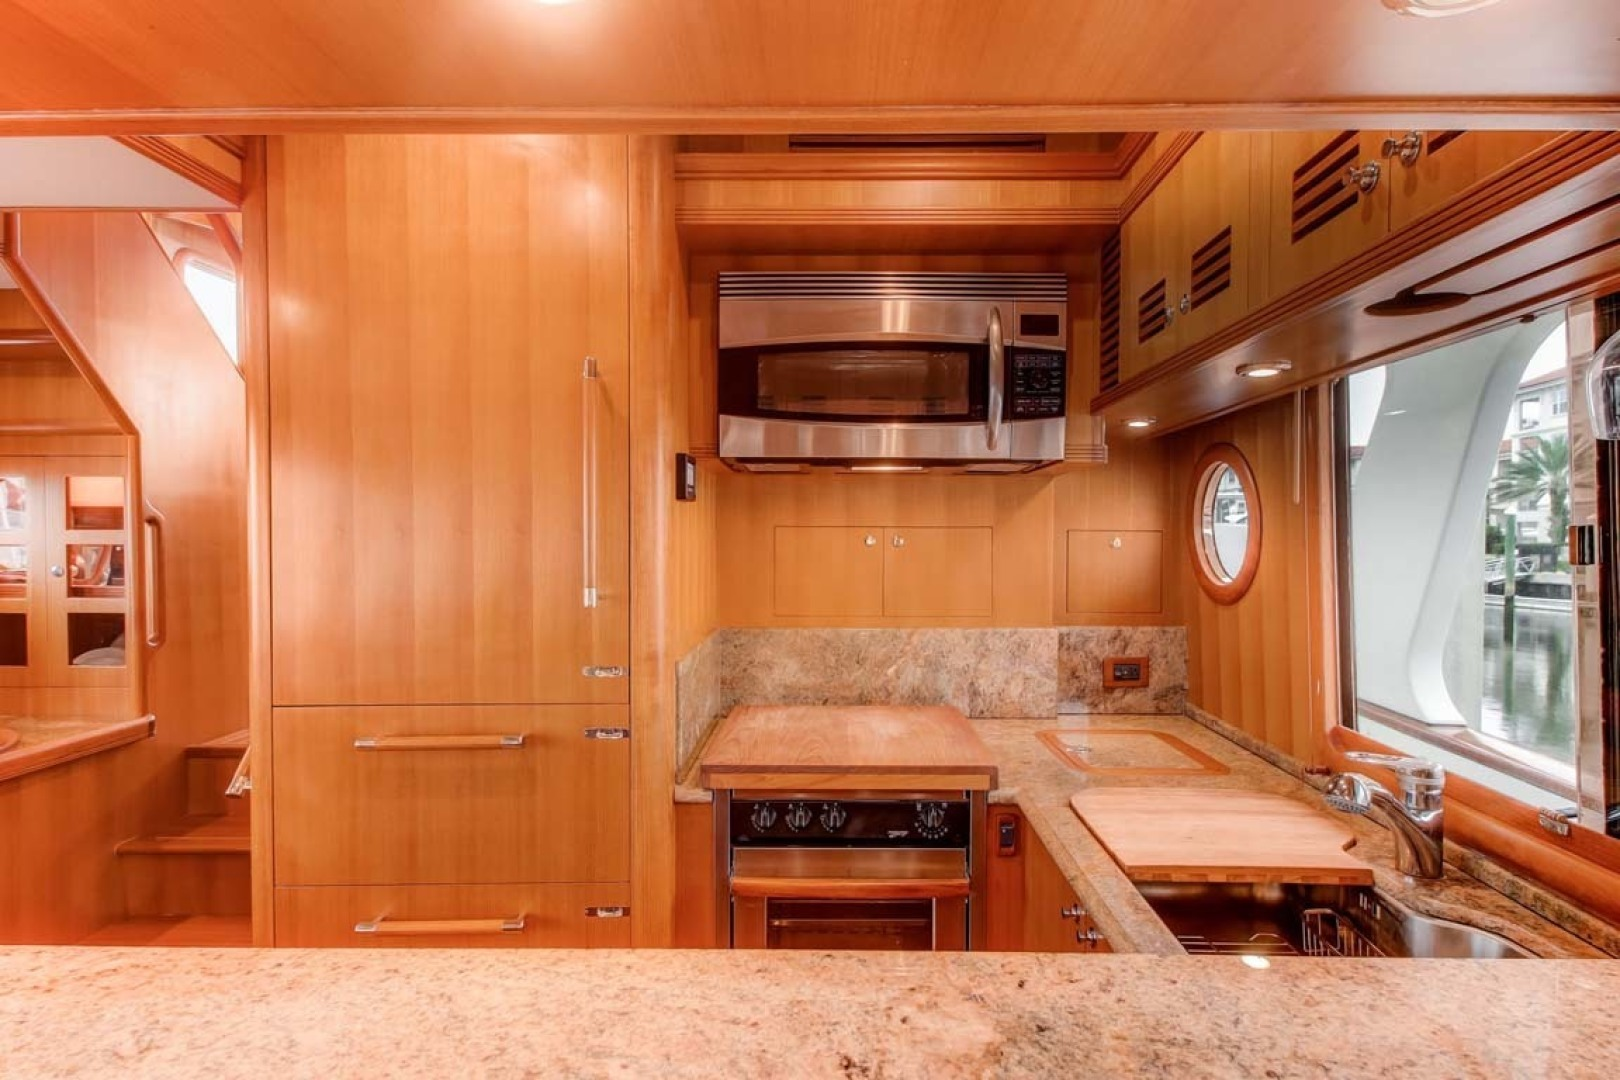 Selene-60 Ocean Trawler 2010-Gypsy Magic Jacksonville-Florida-United States-Galley-1346739 | Thumbnail